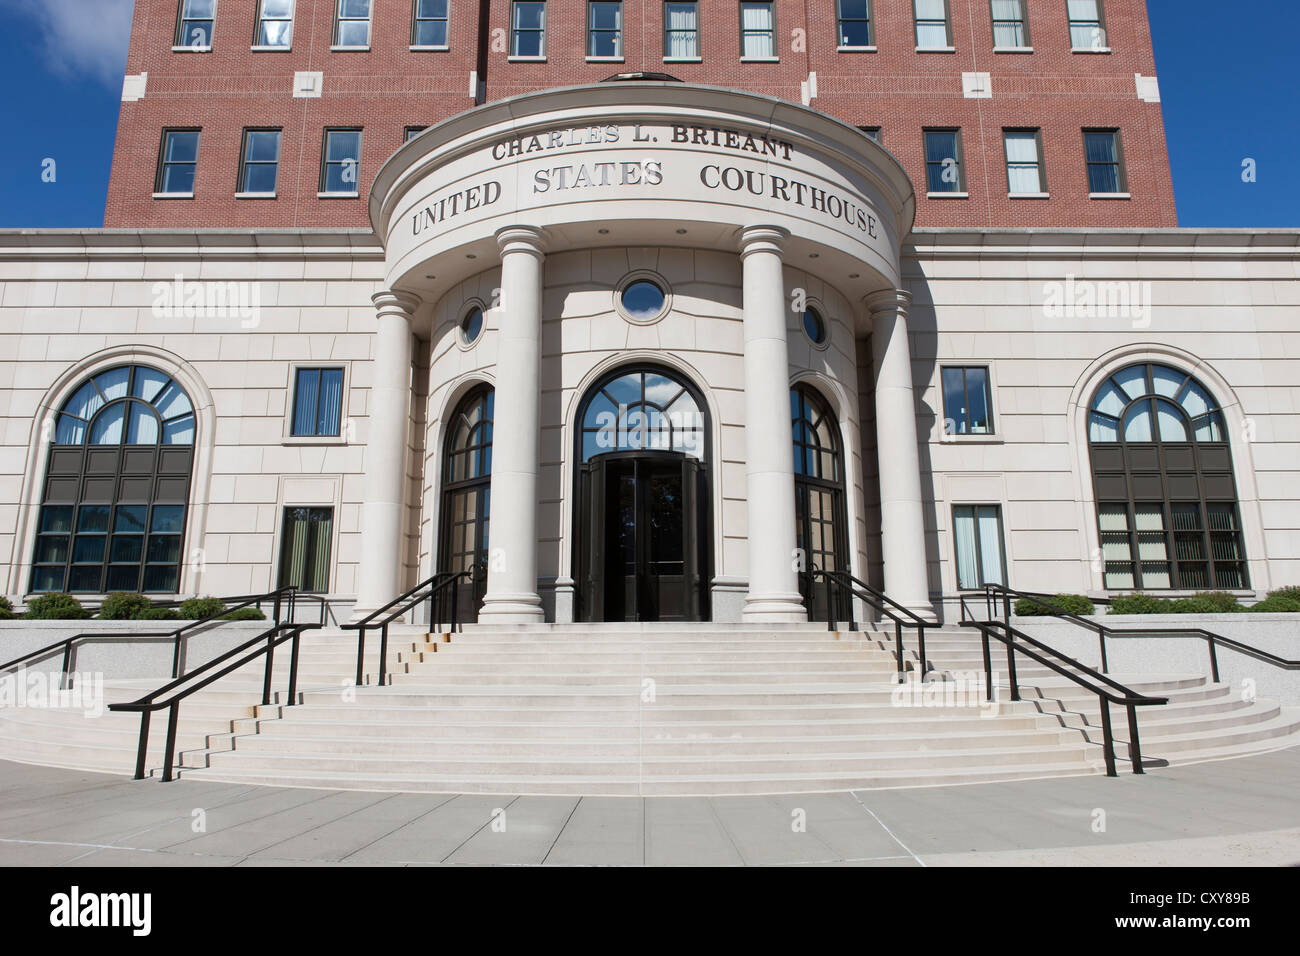 The Charles L. Brieant United States Federal Building and Courthouse (Southern District of New York) in White Plains, - Stock Image